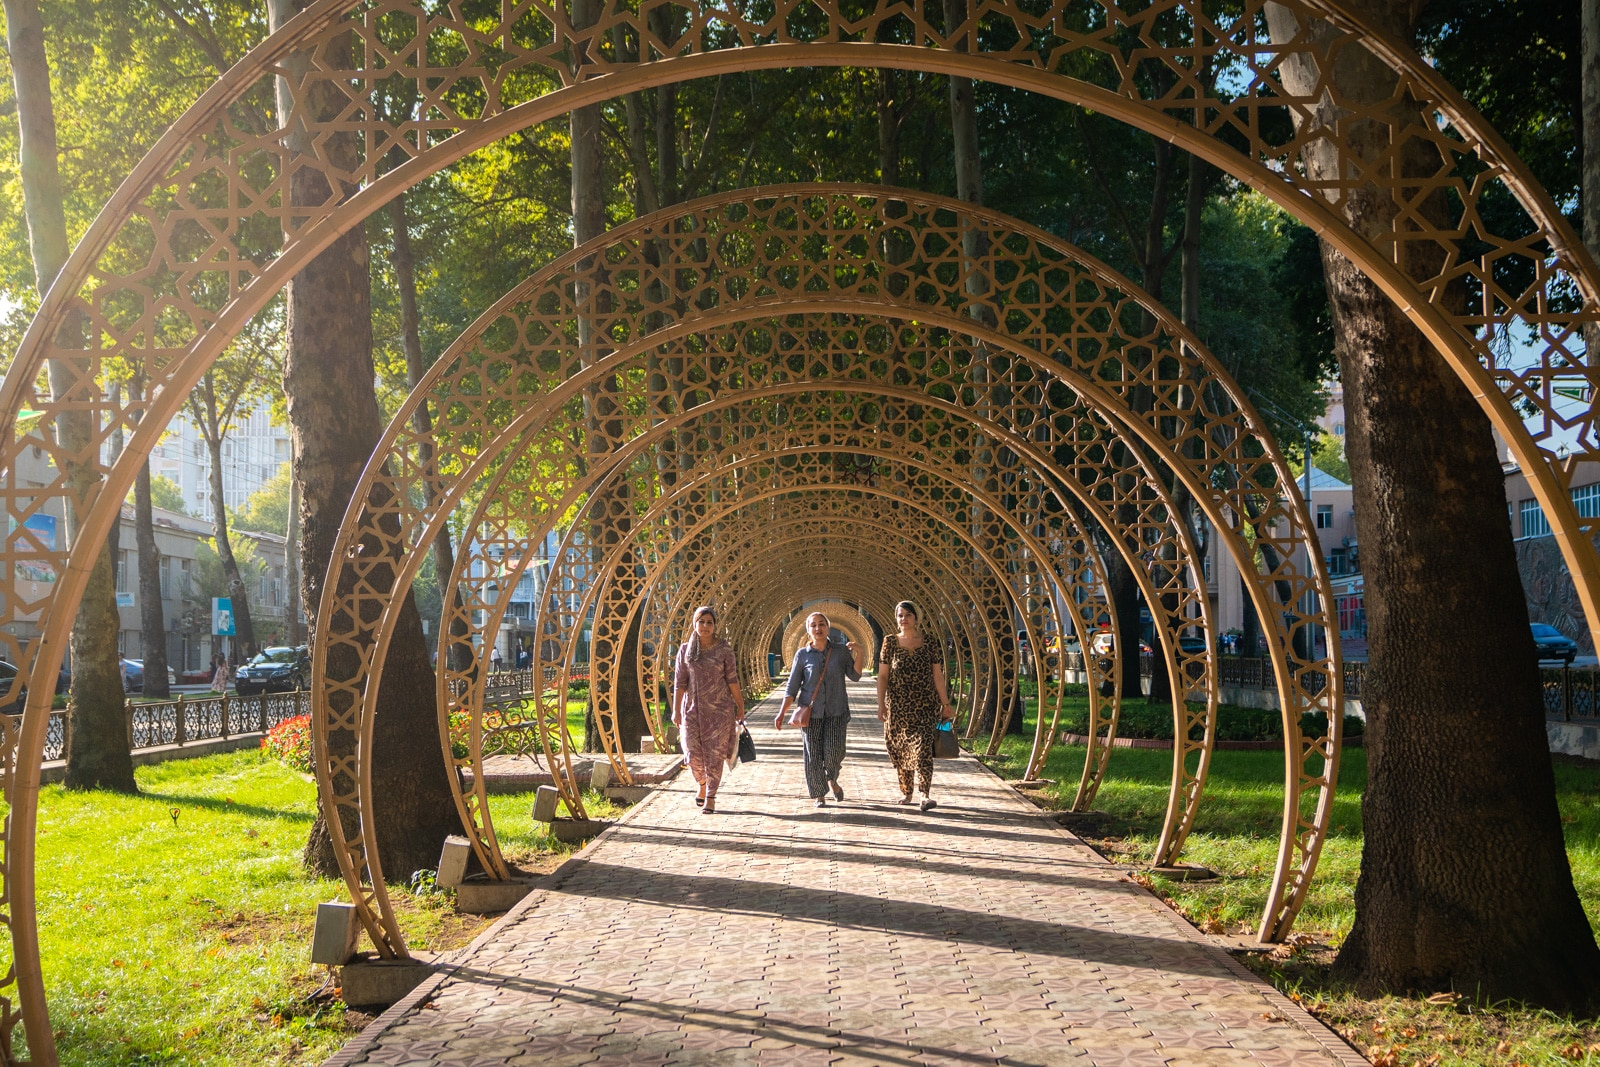 Women walking through a tunnel of arches in Dushanbe, Tajikistan